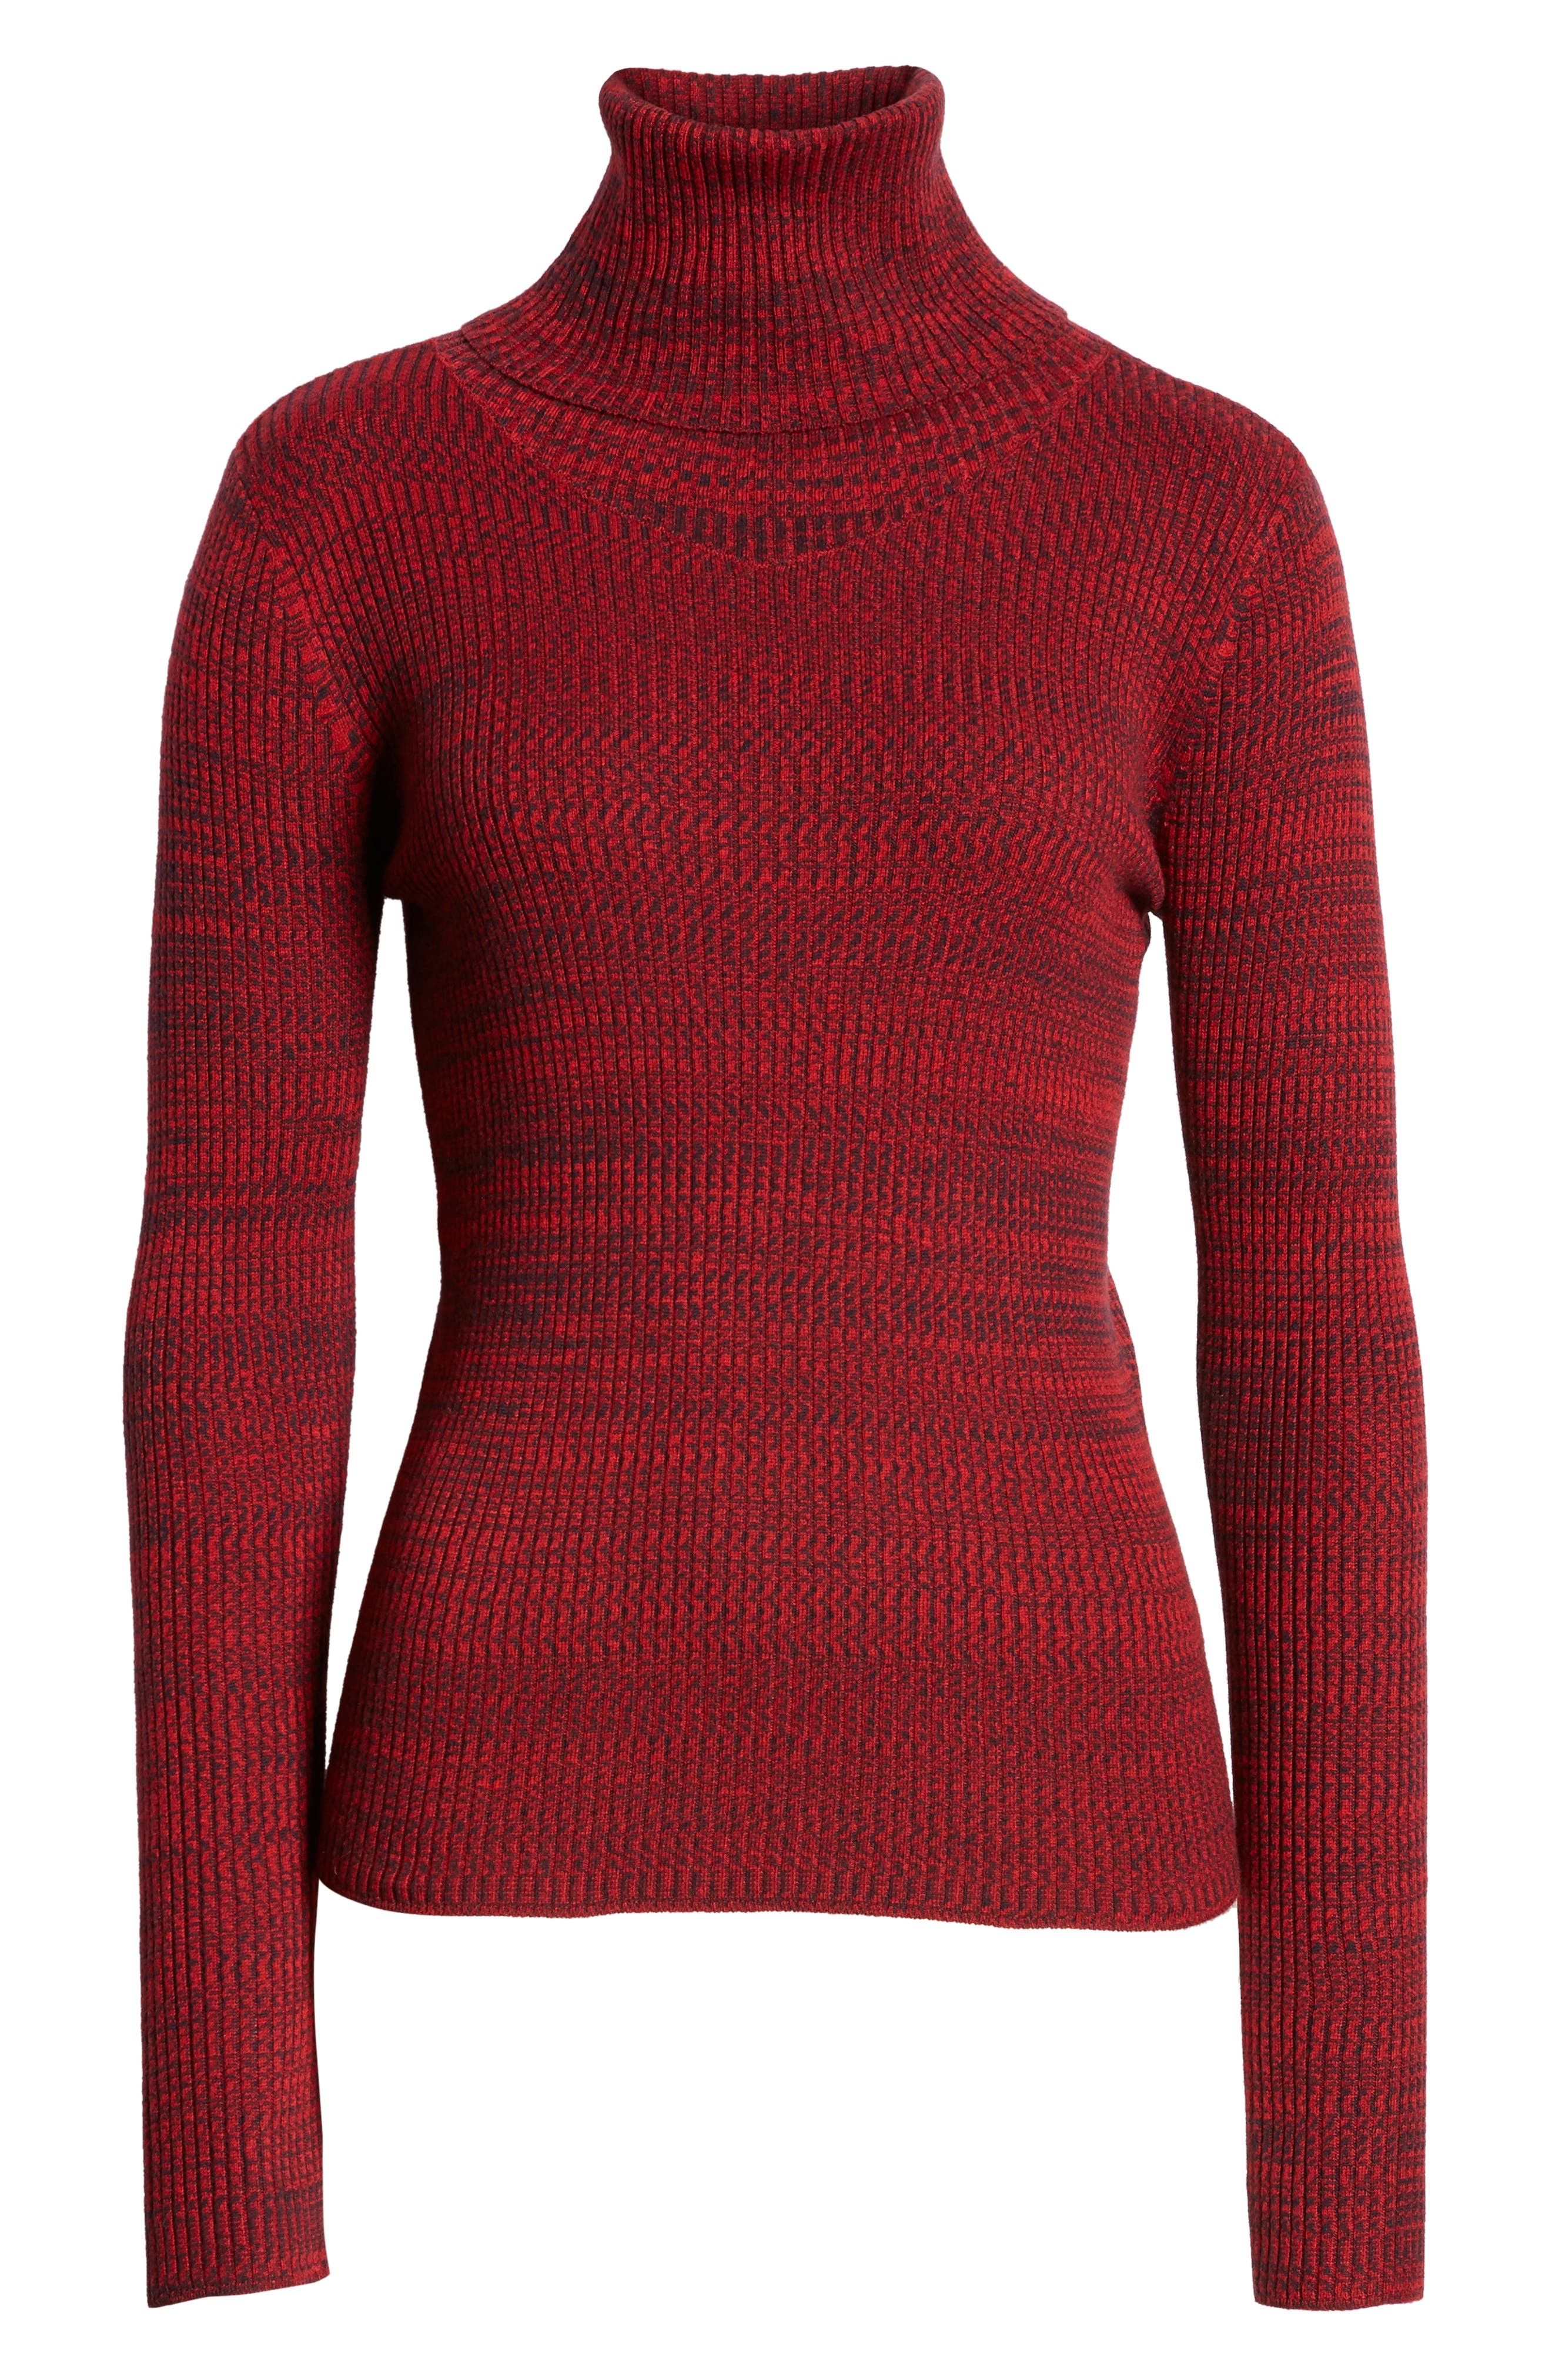 Space Dye Turtleneck Sweater,                             Alternate thumbnail 6, color,                             RED CHINOISE COMBO